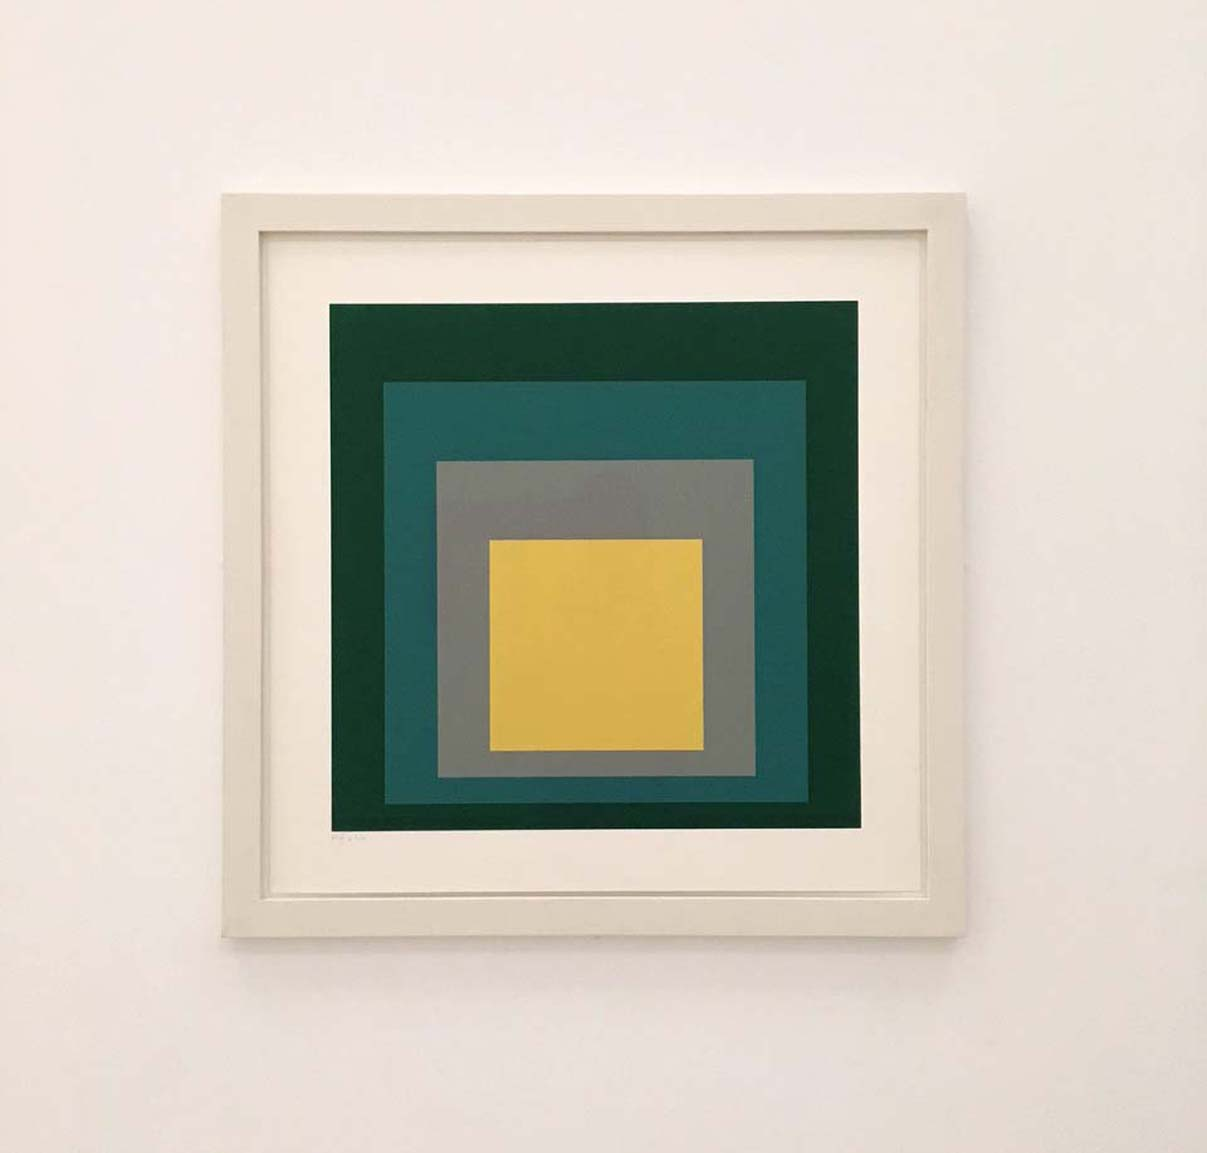 Joseph Albers, Homage to a Square